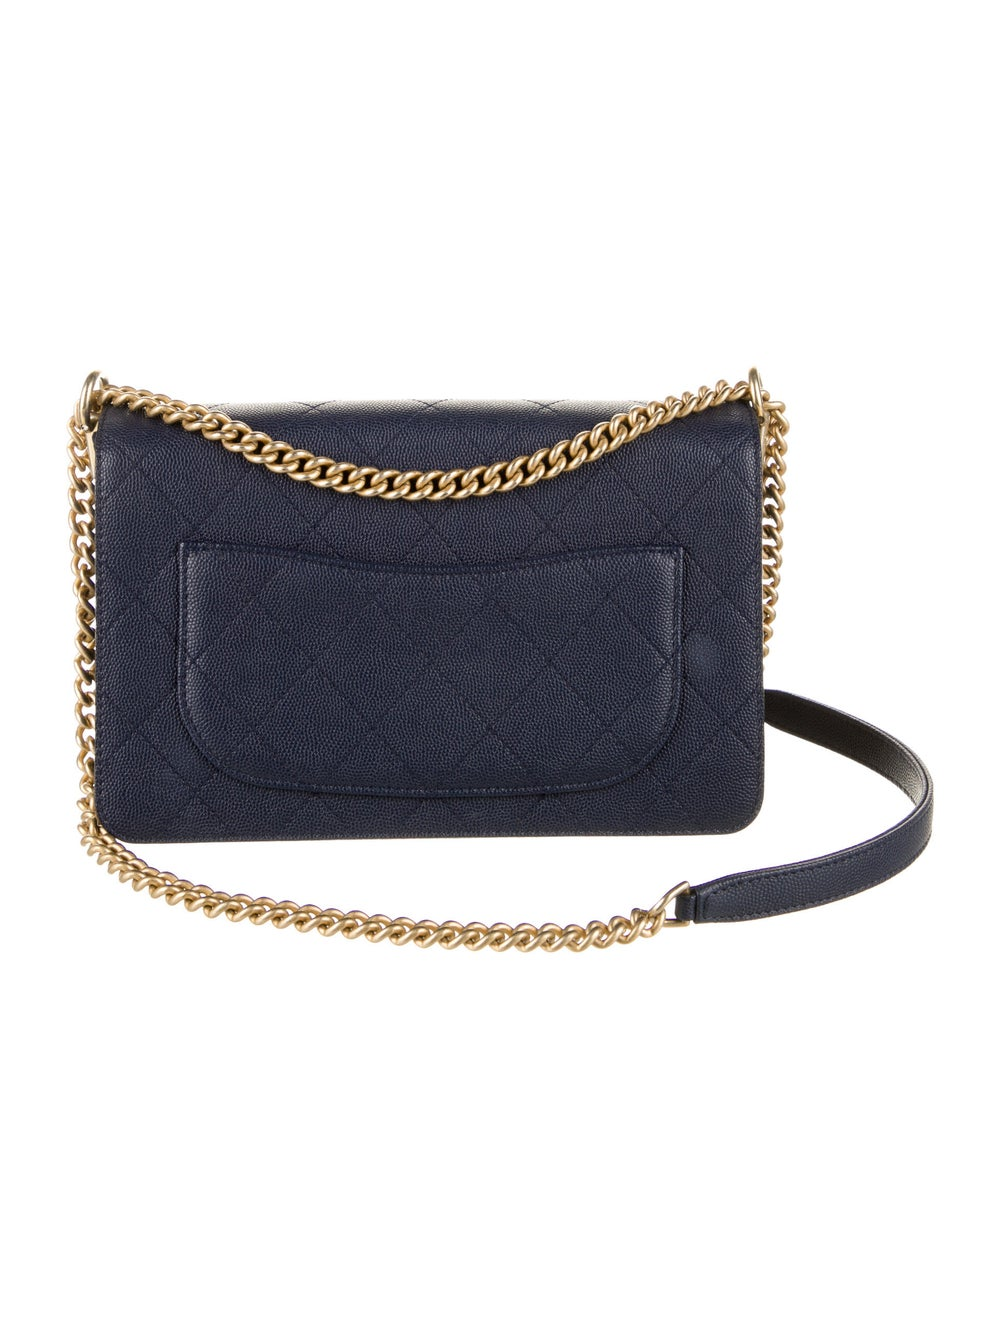 Chanel Chanel Lady Coco Flap Bag Blue - image 4